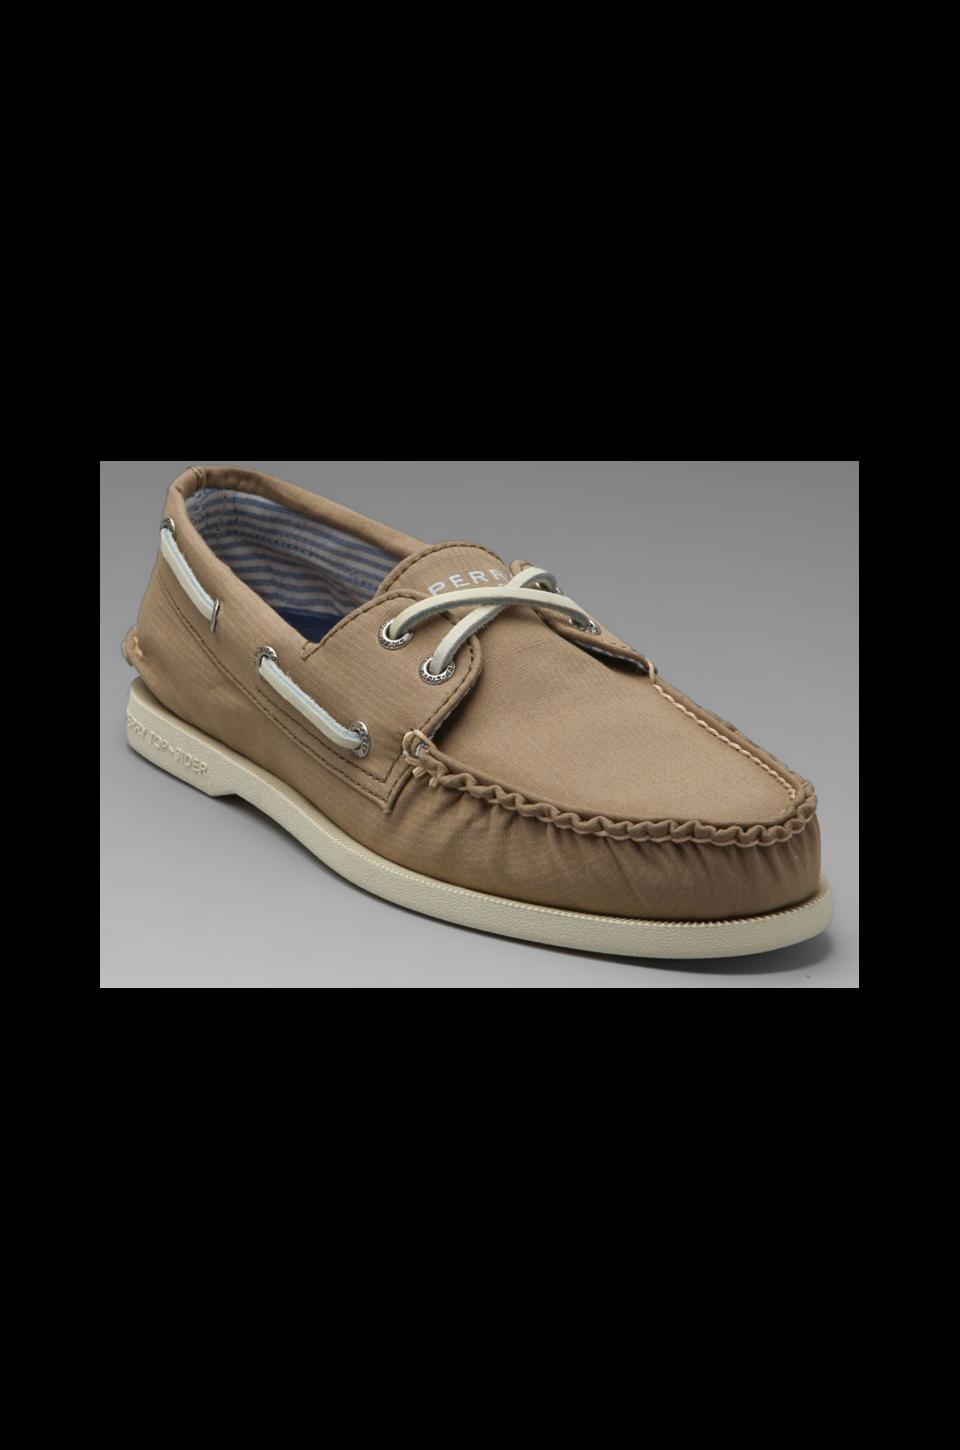 Sperry Top-Sider A/O 2-Eye Canvas in Taupe Canvas